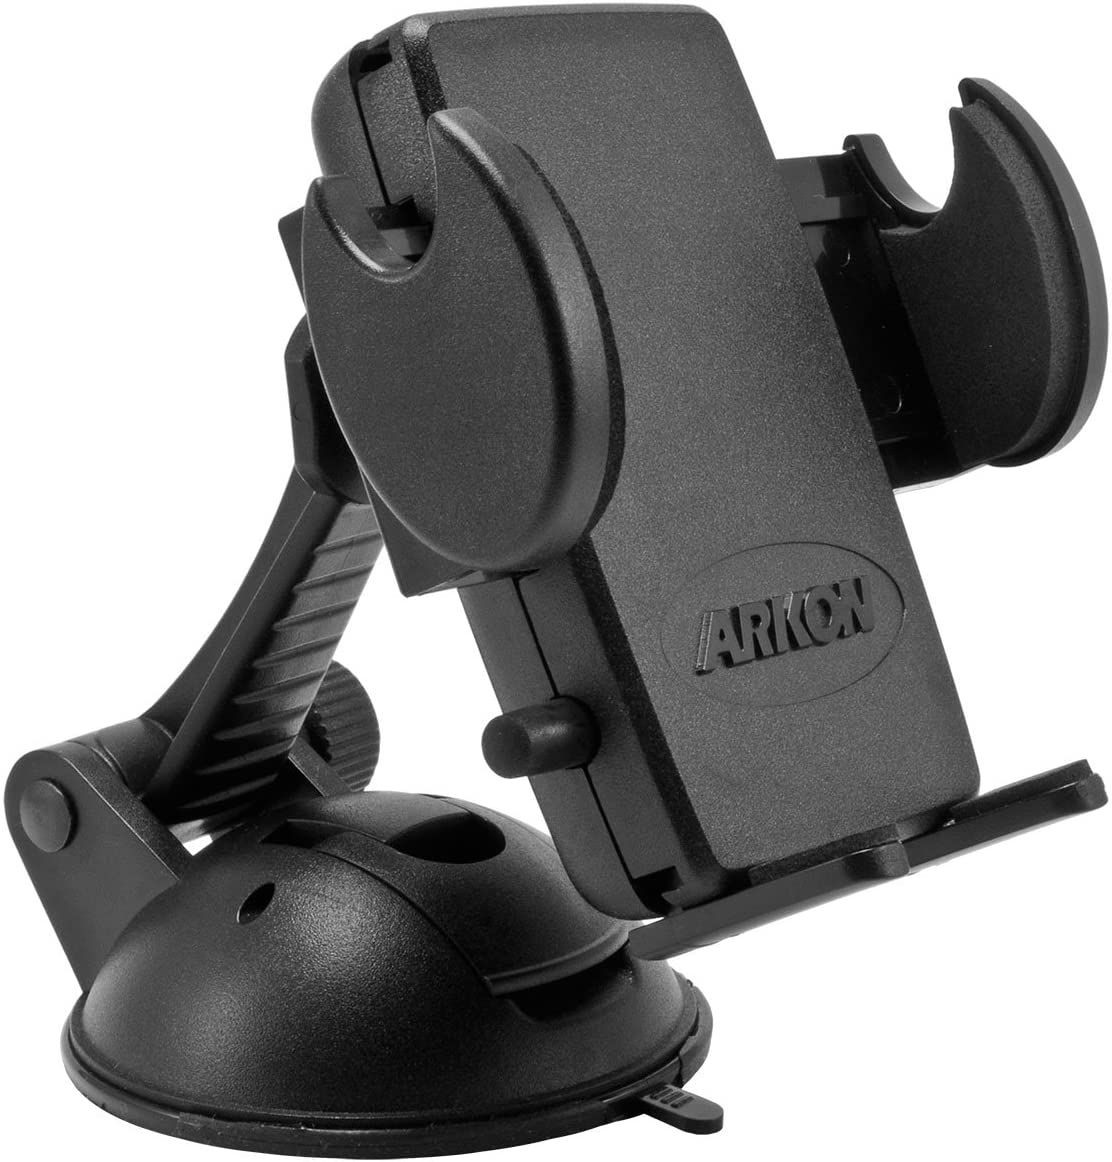 Arkon Windshield or Dash Car Phone Holder Mount for iPhone 7 6S 6 Plus 7 6S 6 Galaxy Note Retail Black